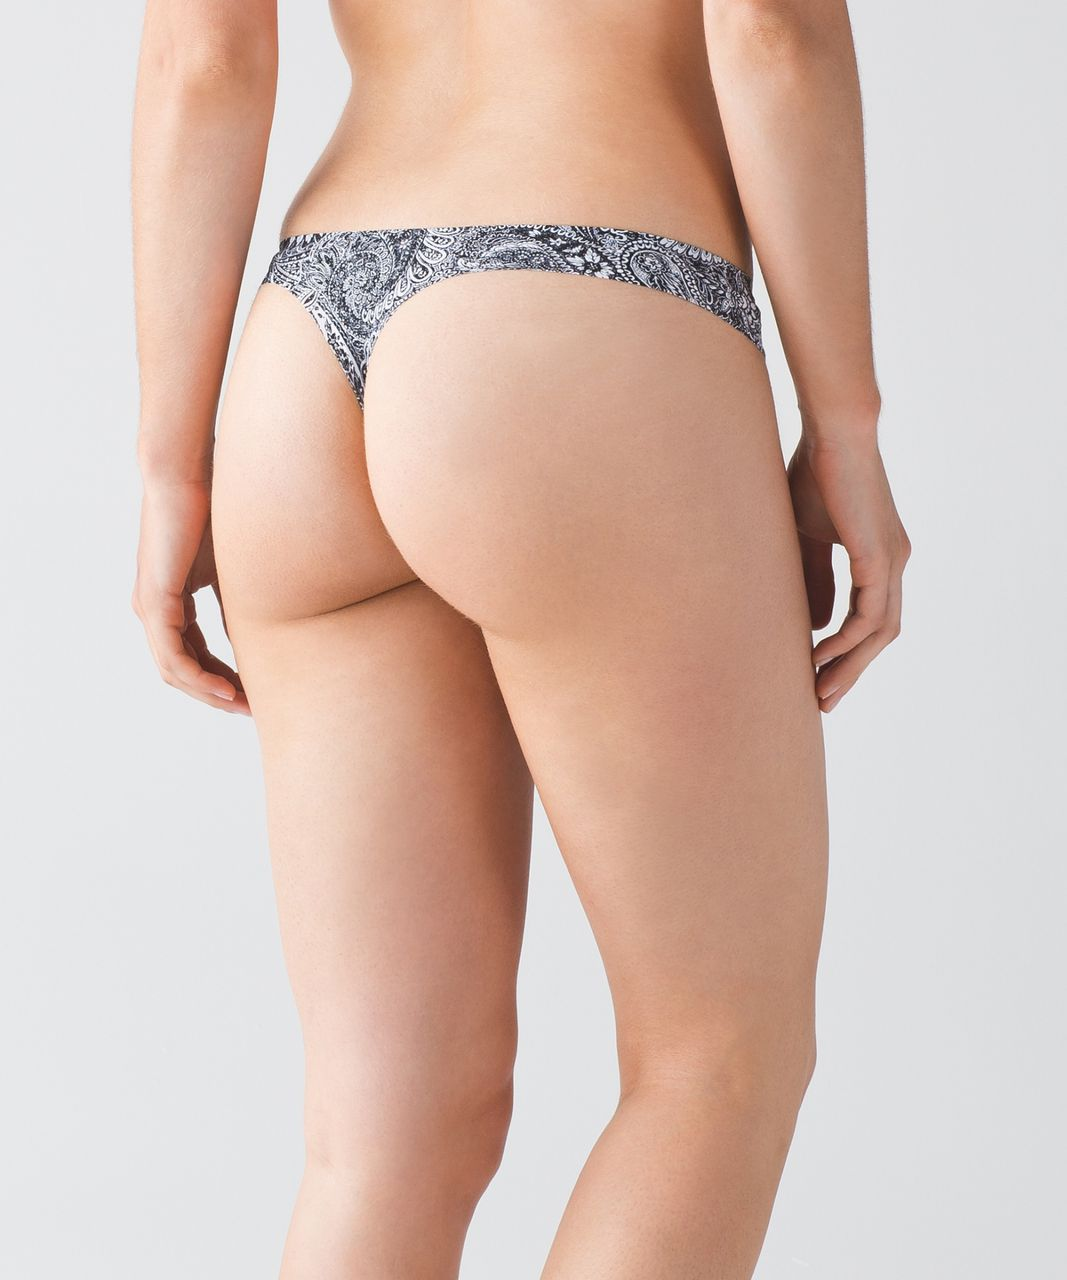 Lululemon Namastay Put Thong - Mini Antique Paisley White Black